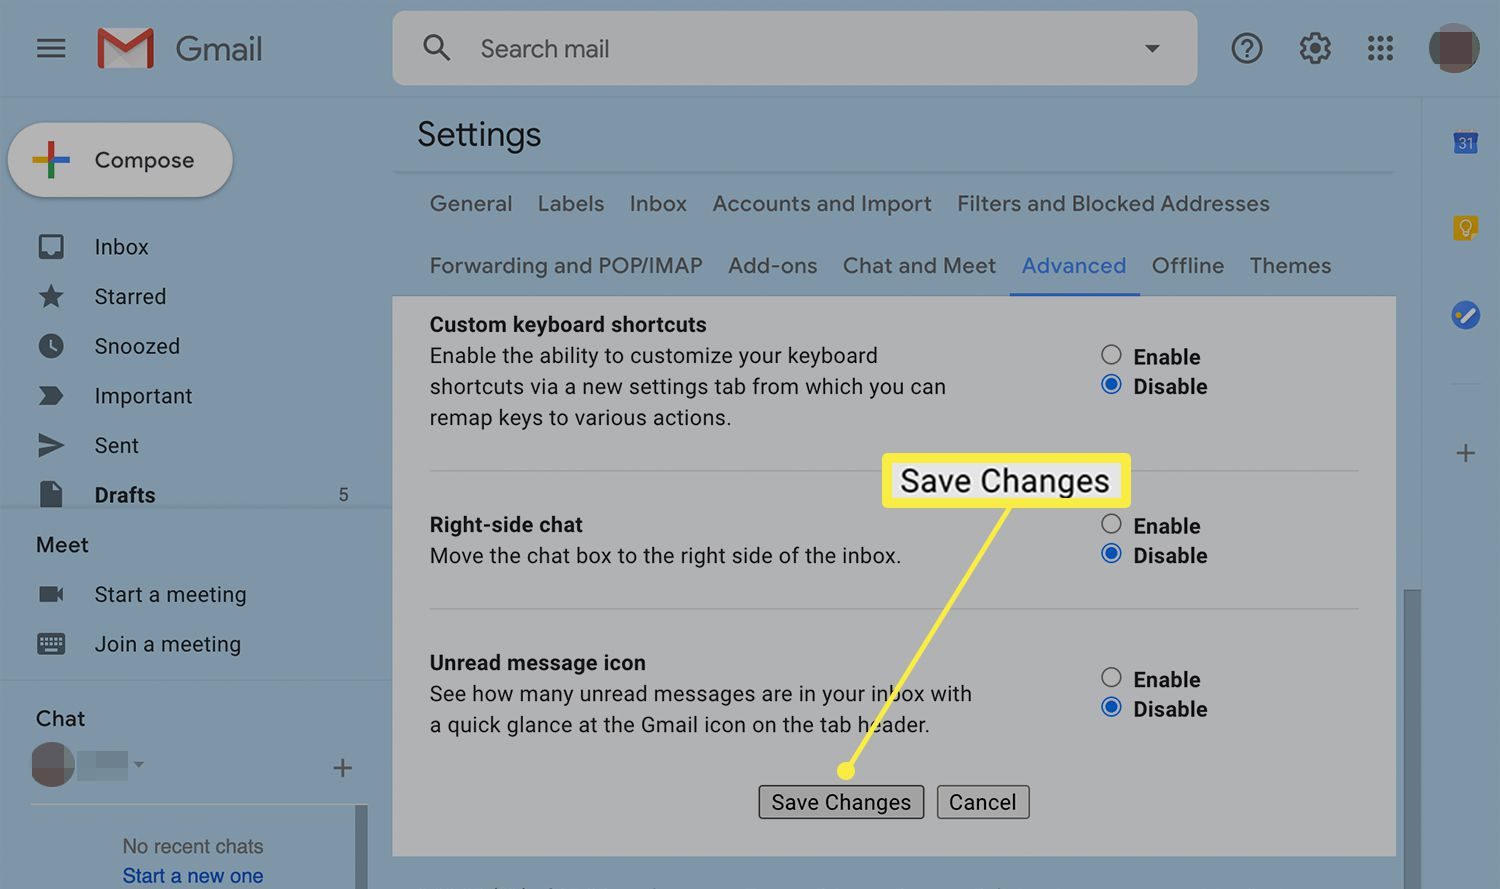 Save changes option for settings changes in Gmail